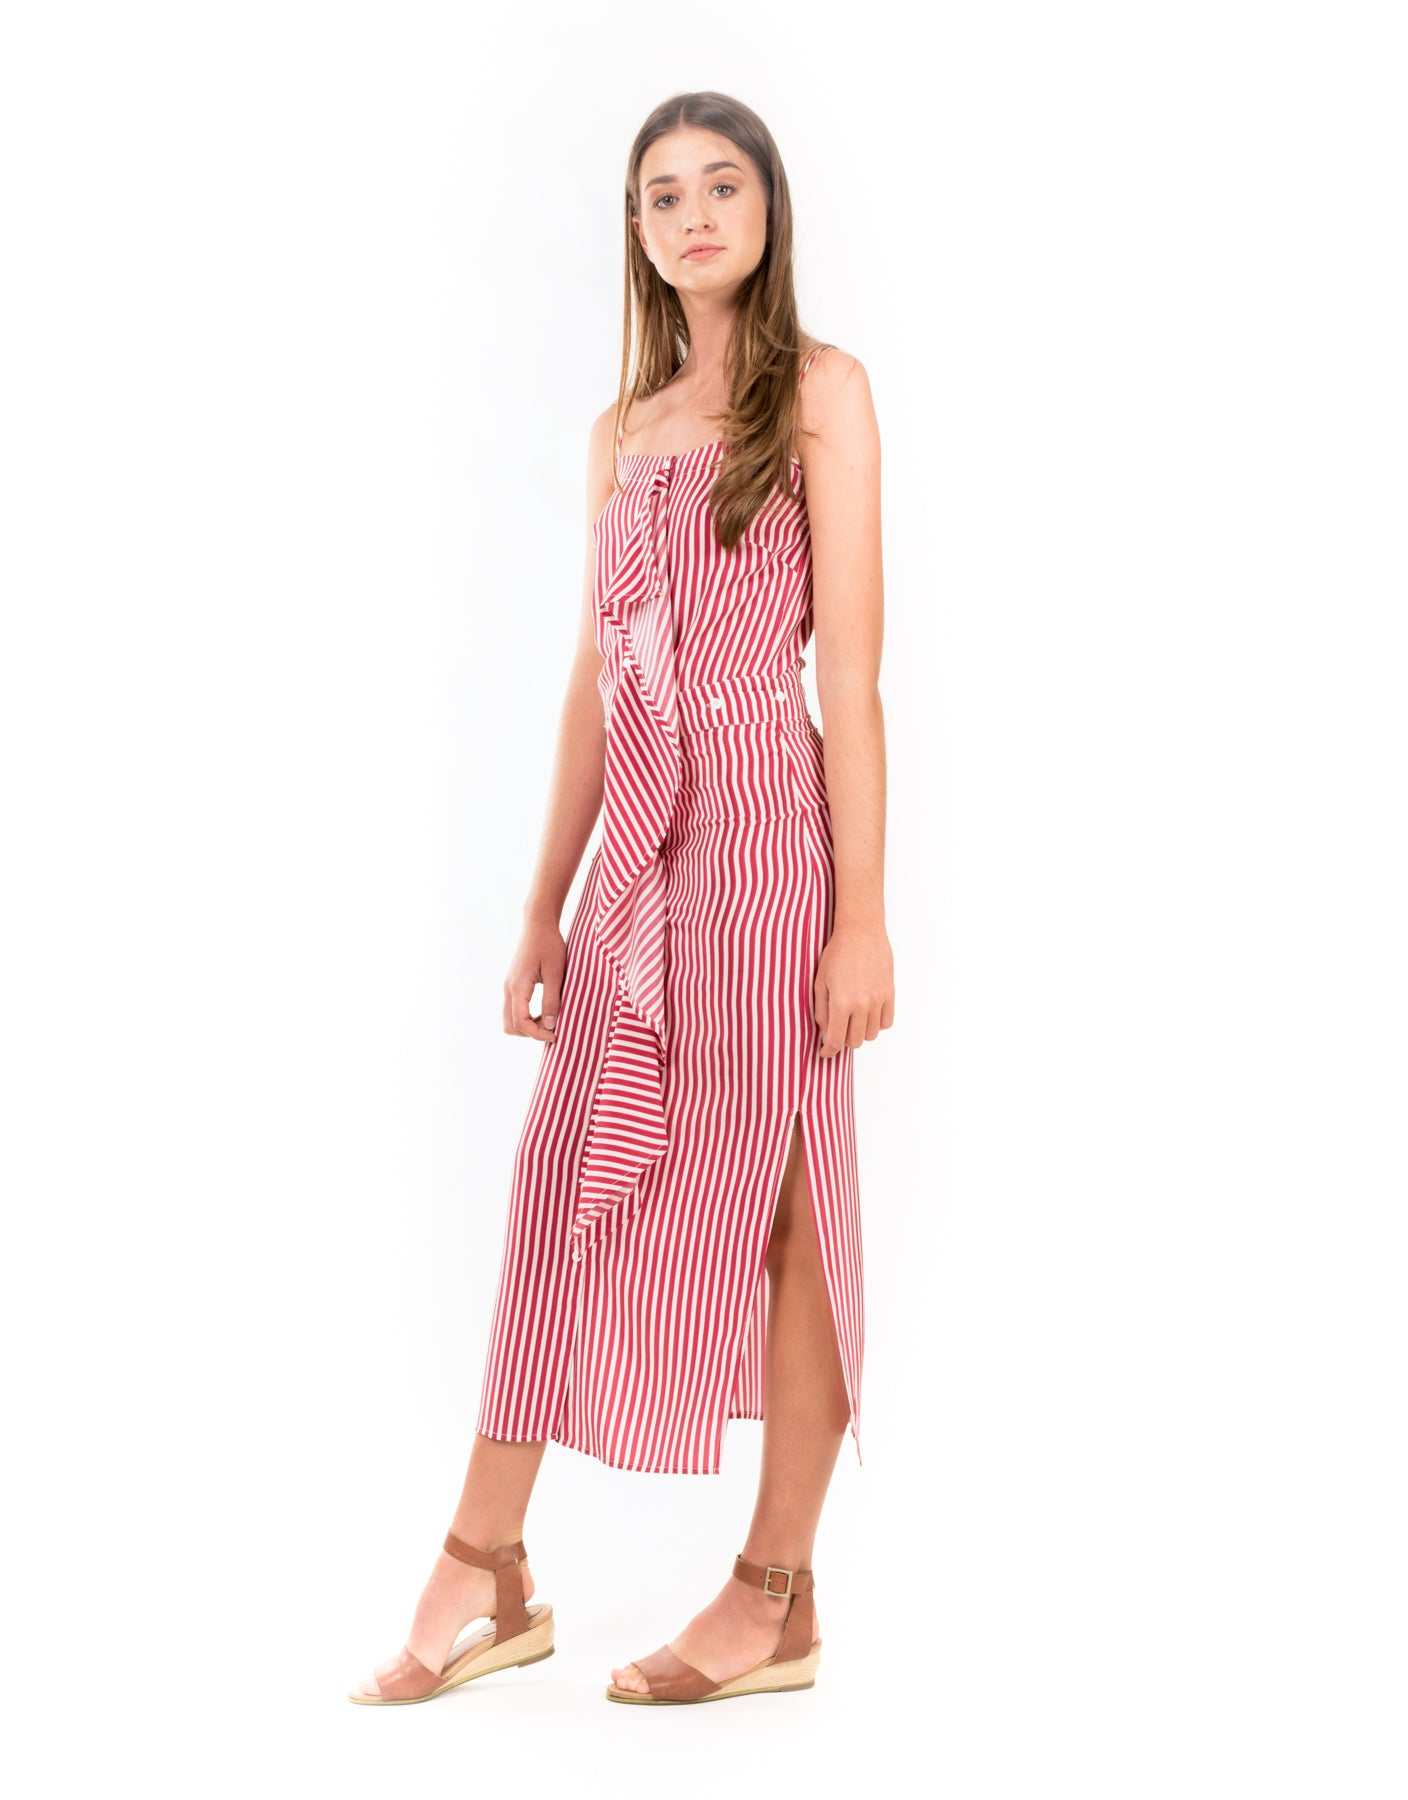 The Giselle Stripe